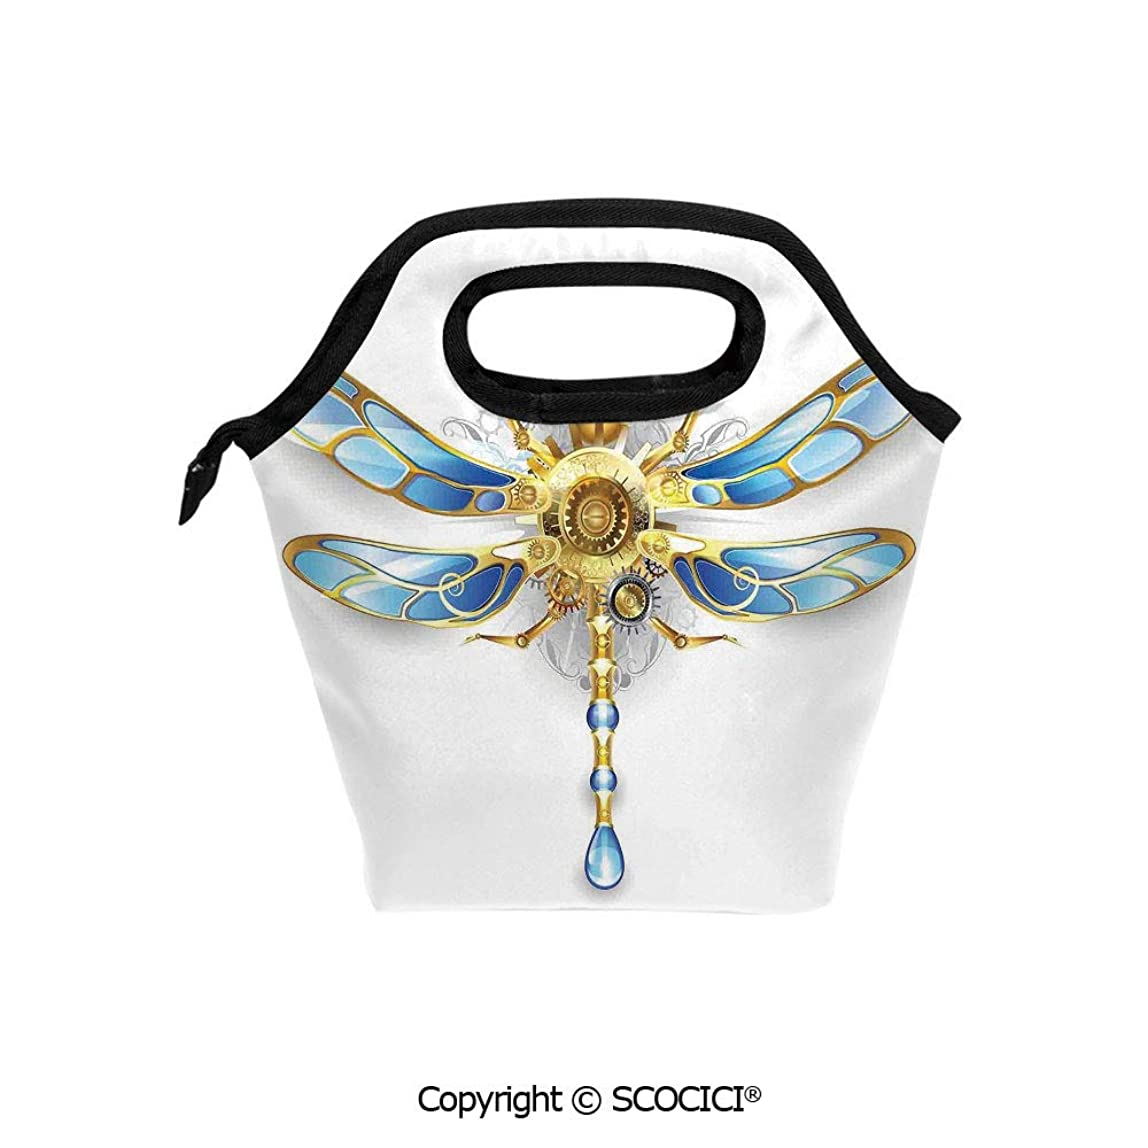 Reusable Insulated Lunch Bags with Pocket Close Up View of Mechanical Dragonfly with Multifaceted Eyes and Gears Body Print for Adults Kids Boys Girls. wkdeafb154372